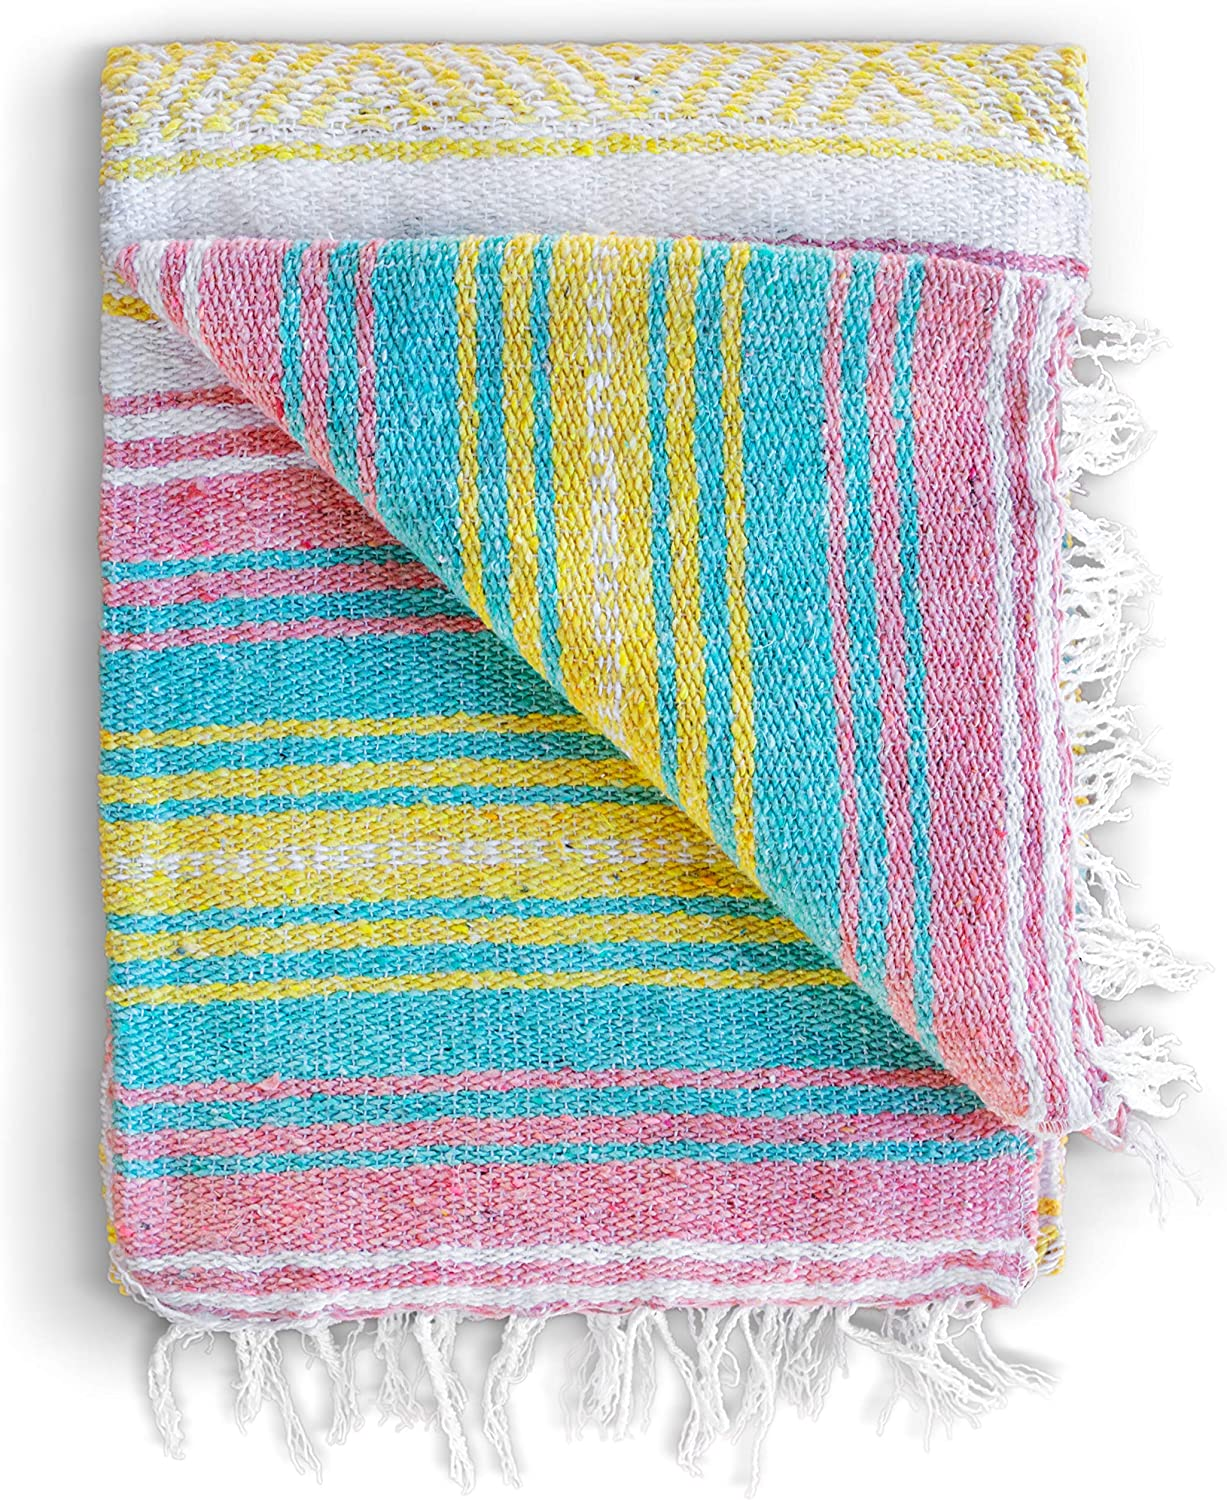 Mexican Blanket, Falsa Blanket | Authentic Hand Woven Blanket, Serape, Yoga Blanket | Perfect Beach Blanket, Navajo Blanket, Camping Blanket, Picnic Blanket, Saddle Blanket, Car Blanket (Sunrise)